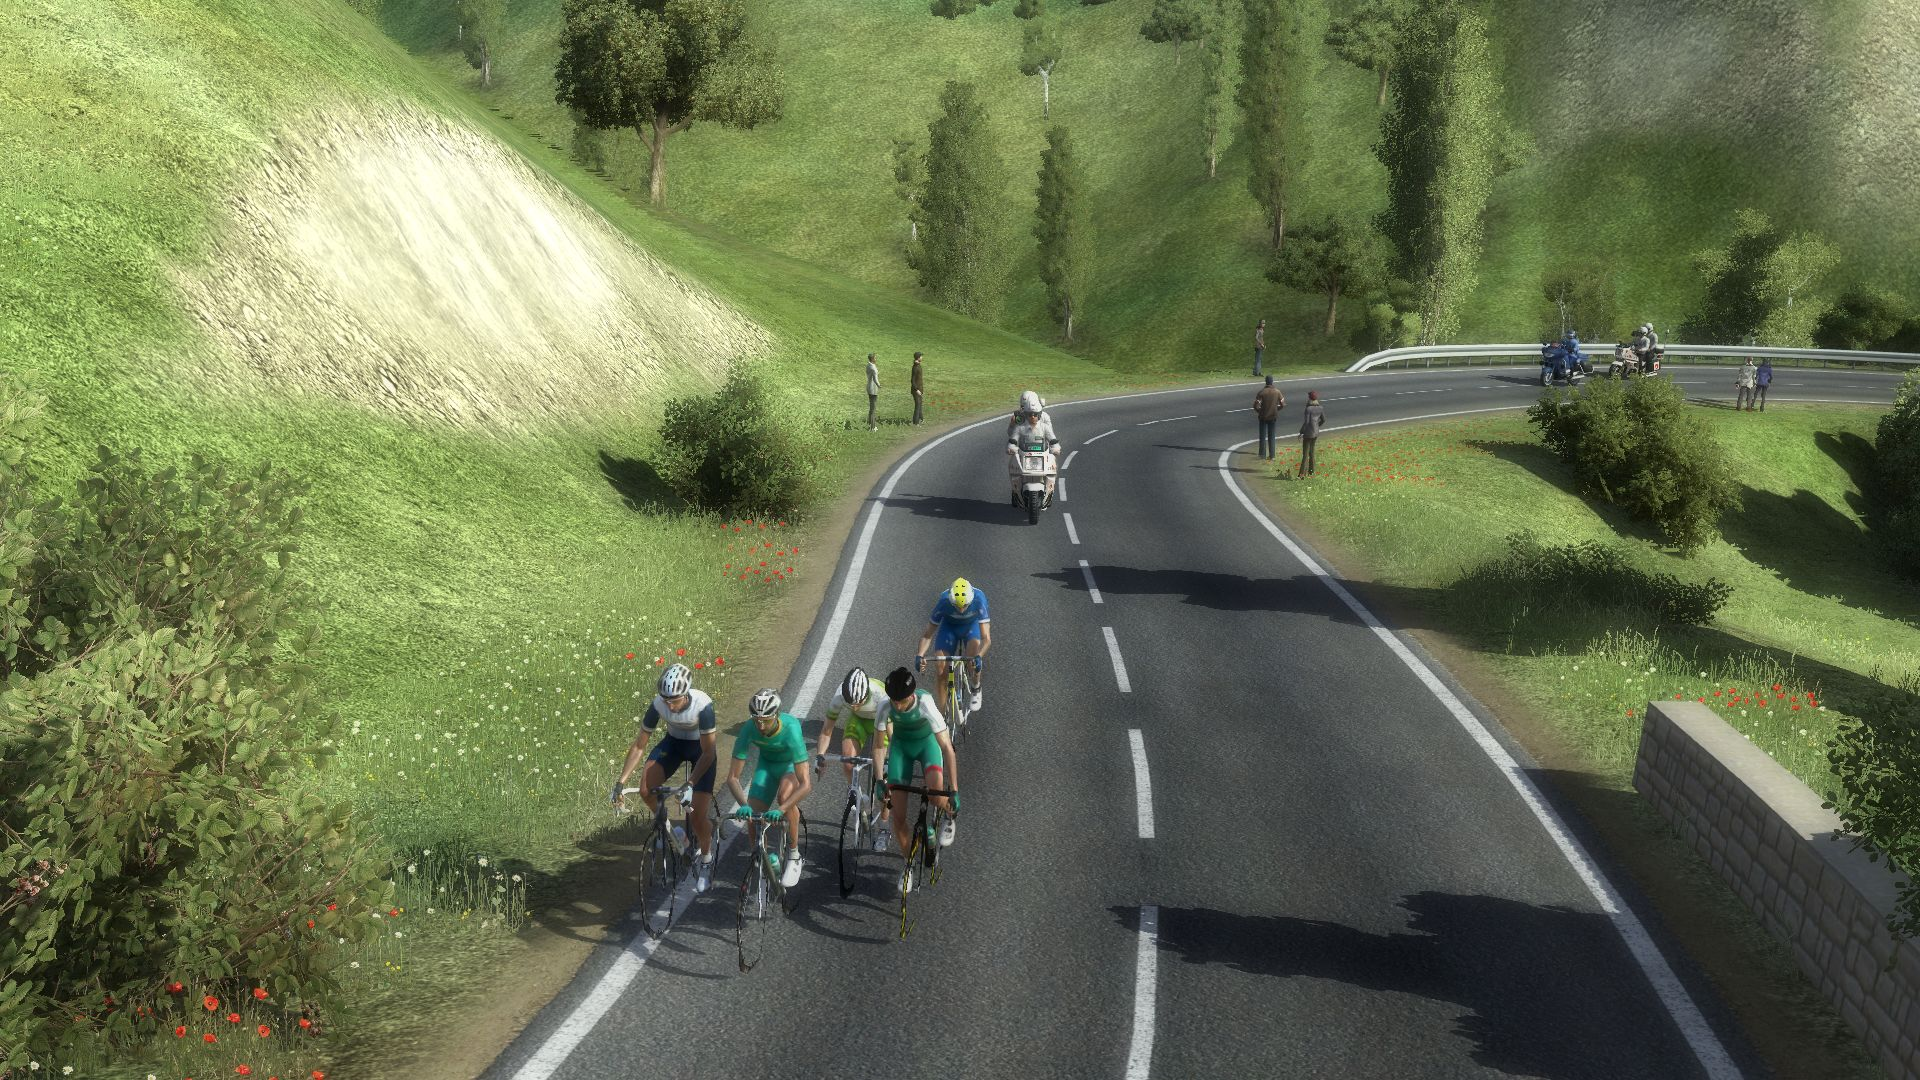 pcmdaily.com/images/mg/2019/Races/C2/CSS/CSS%201.jpg